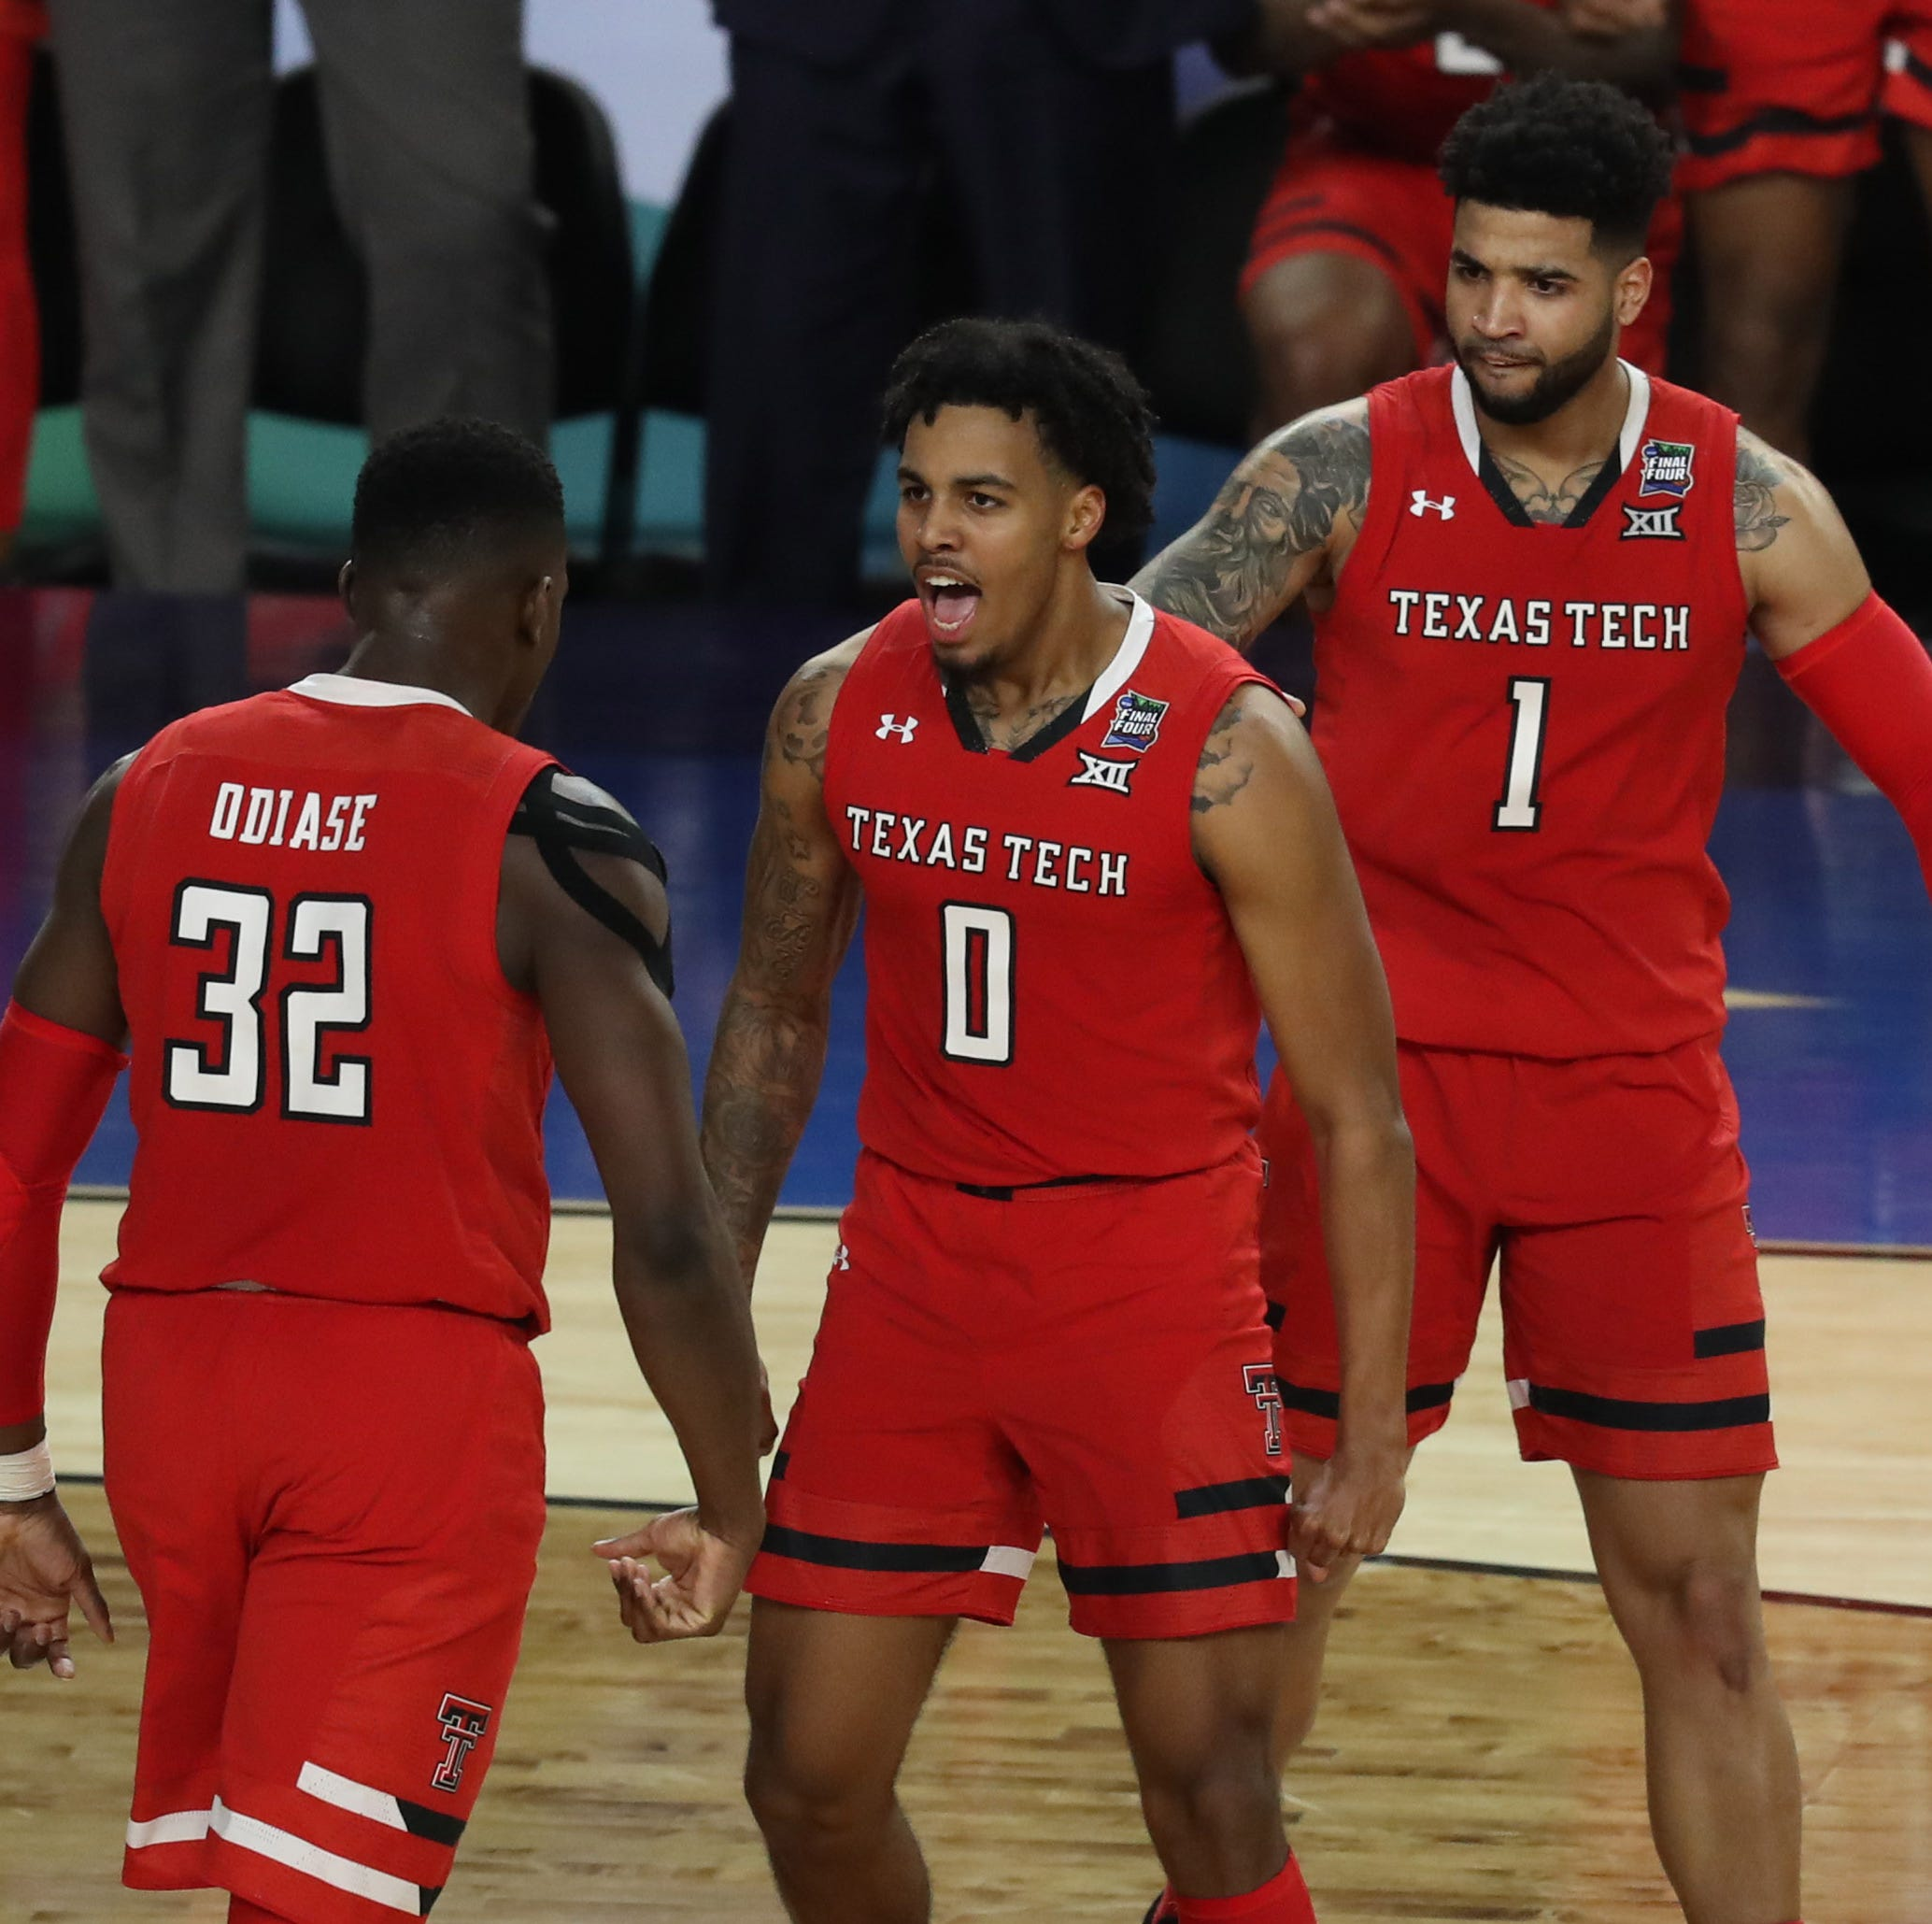 NCAA basketball championship: How to watch, stream, listen live Texas Tech vs. UVA